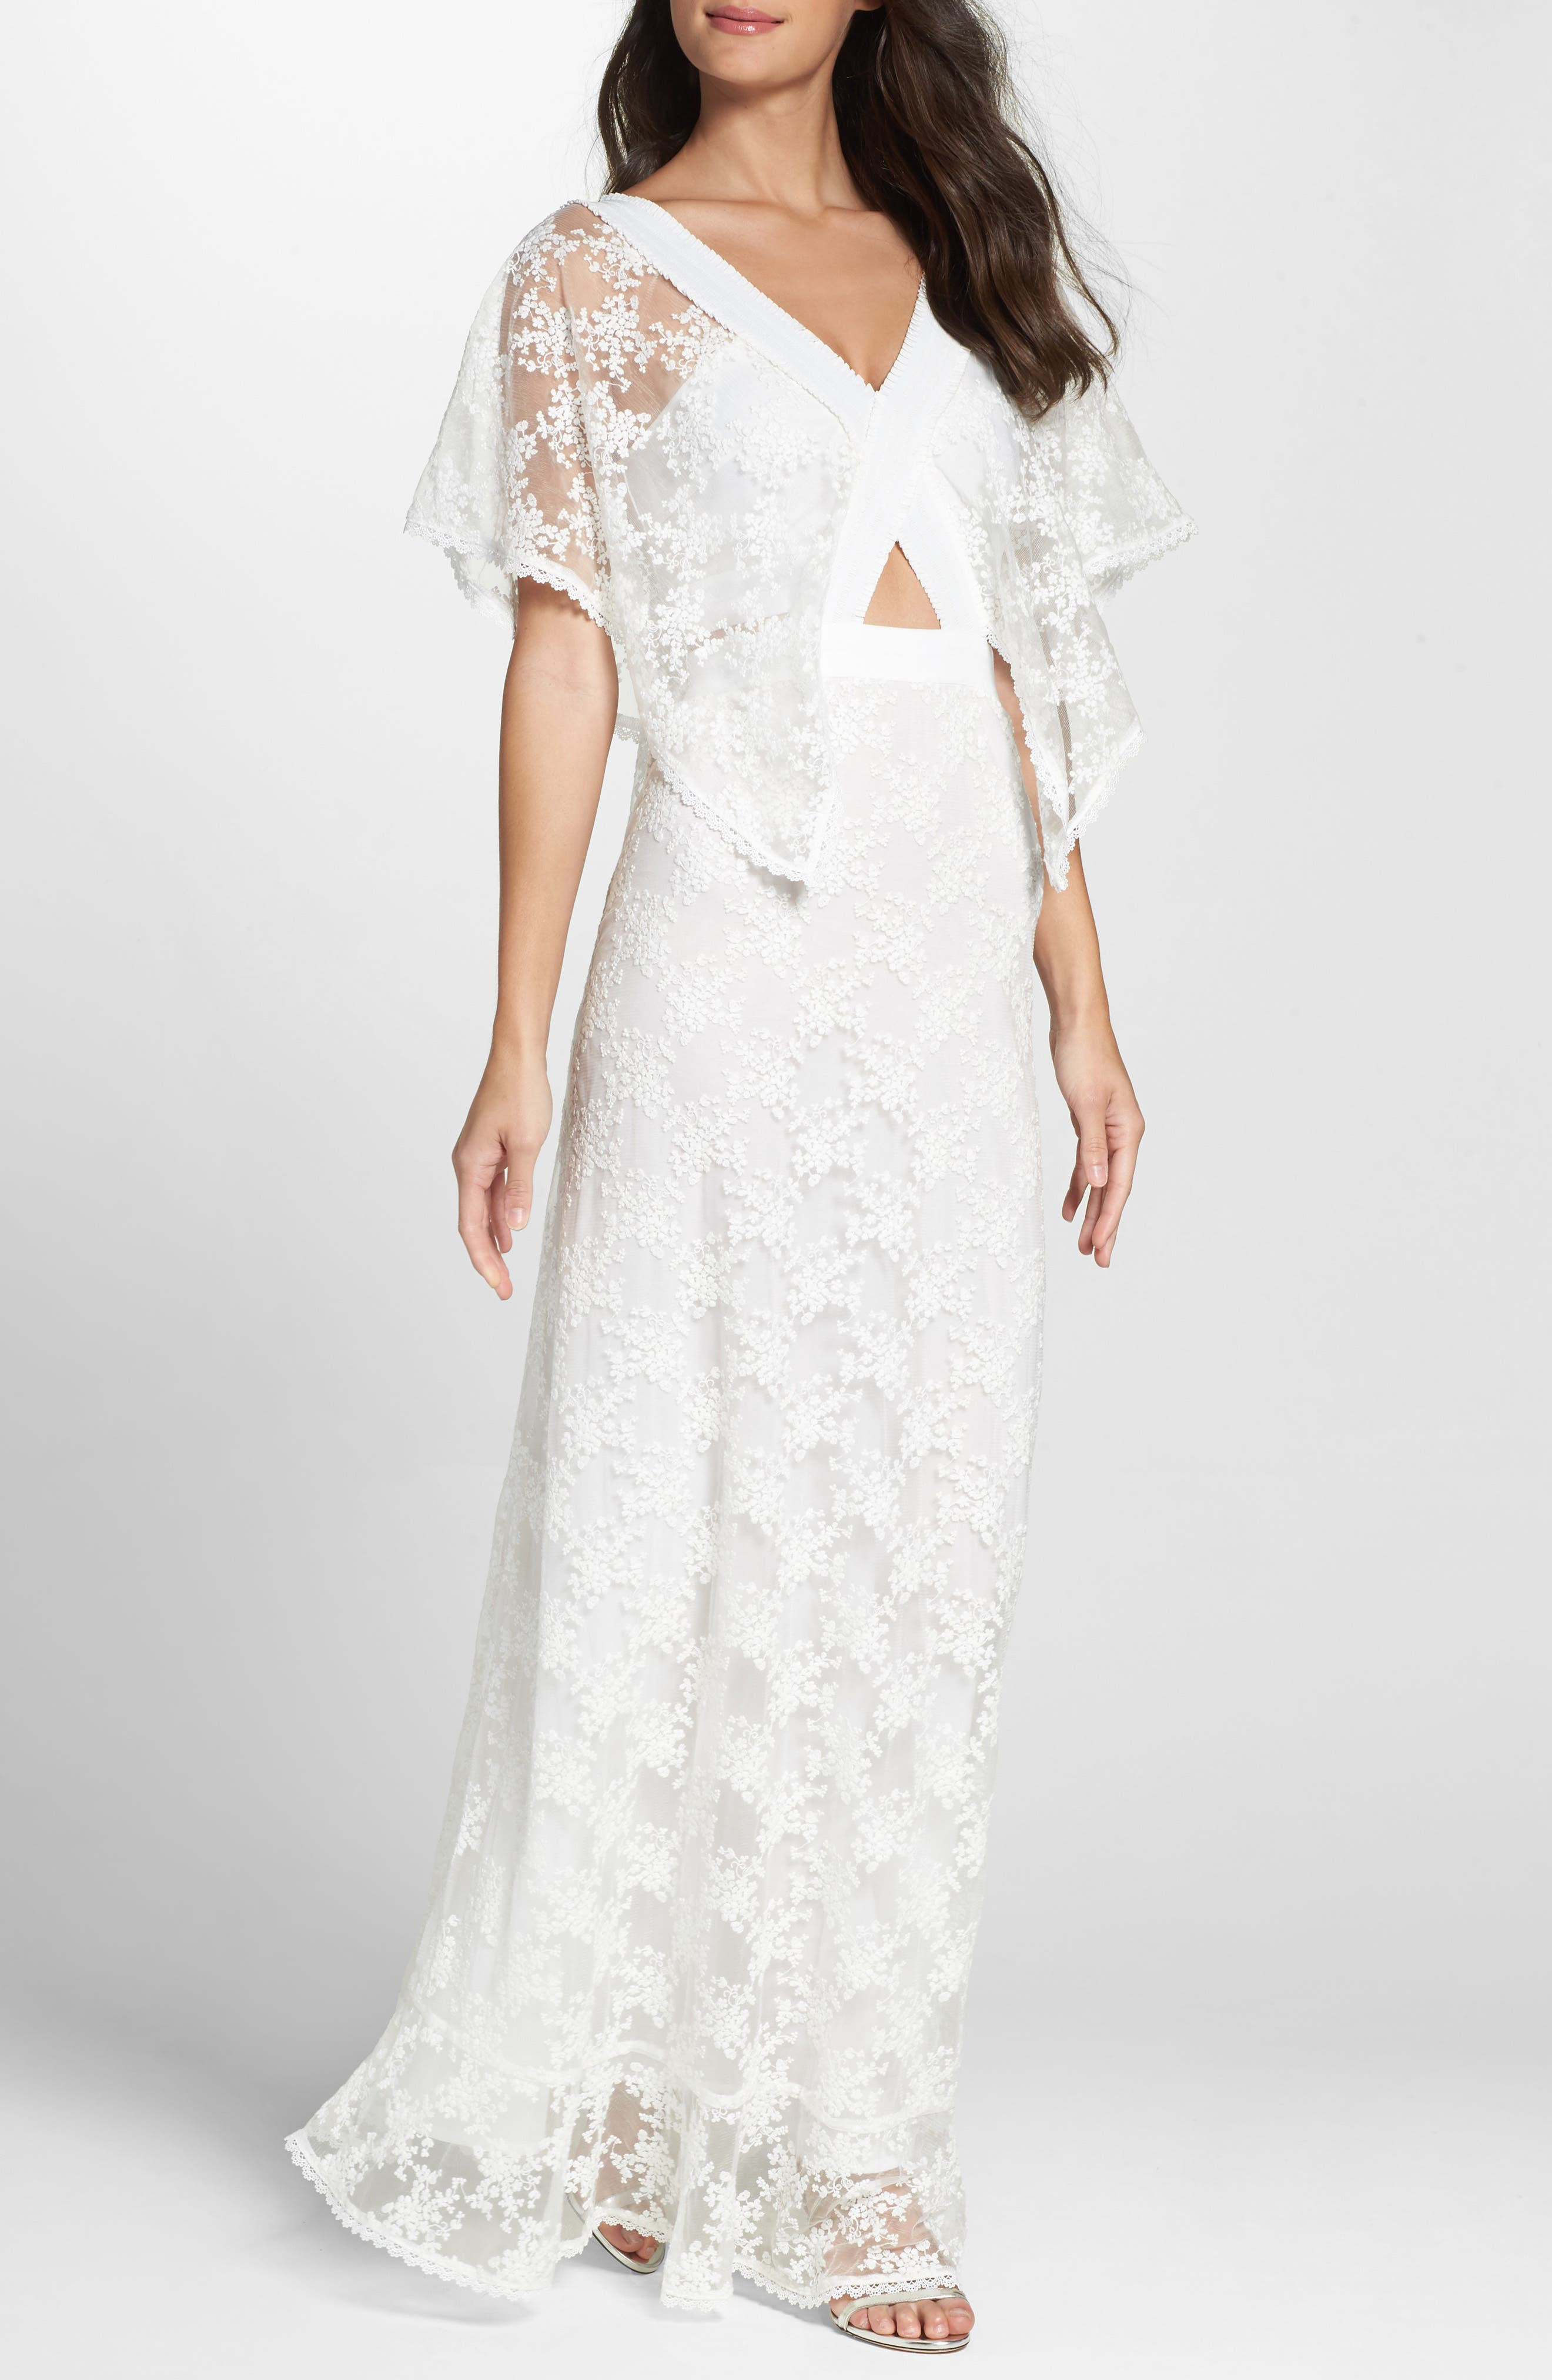 August Handkerchief Sleeve Embroidered Long Dress,                             Main thumbnail 1, color,